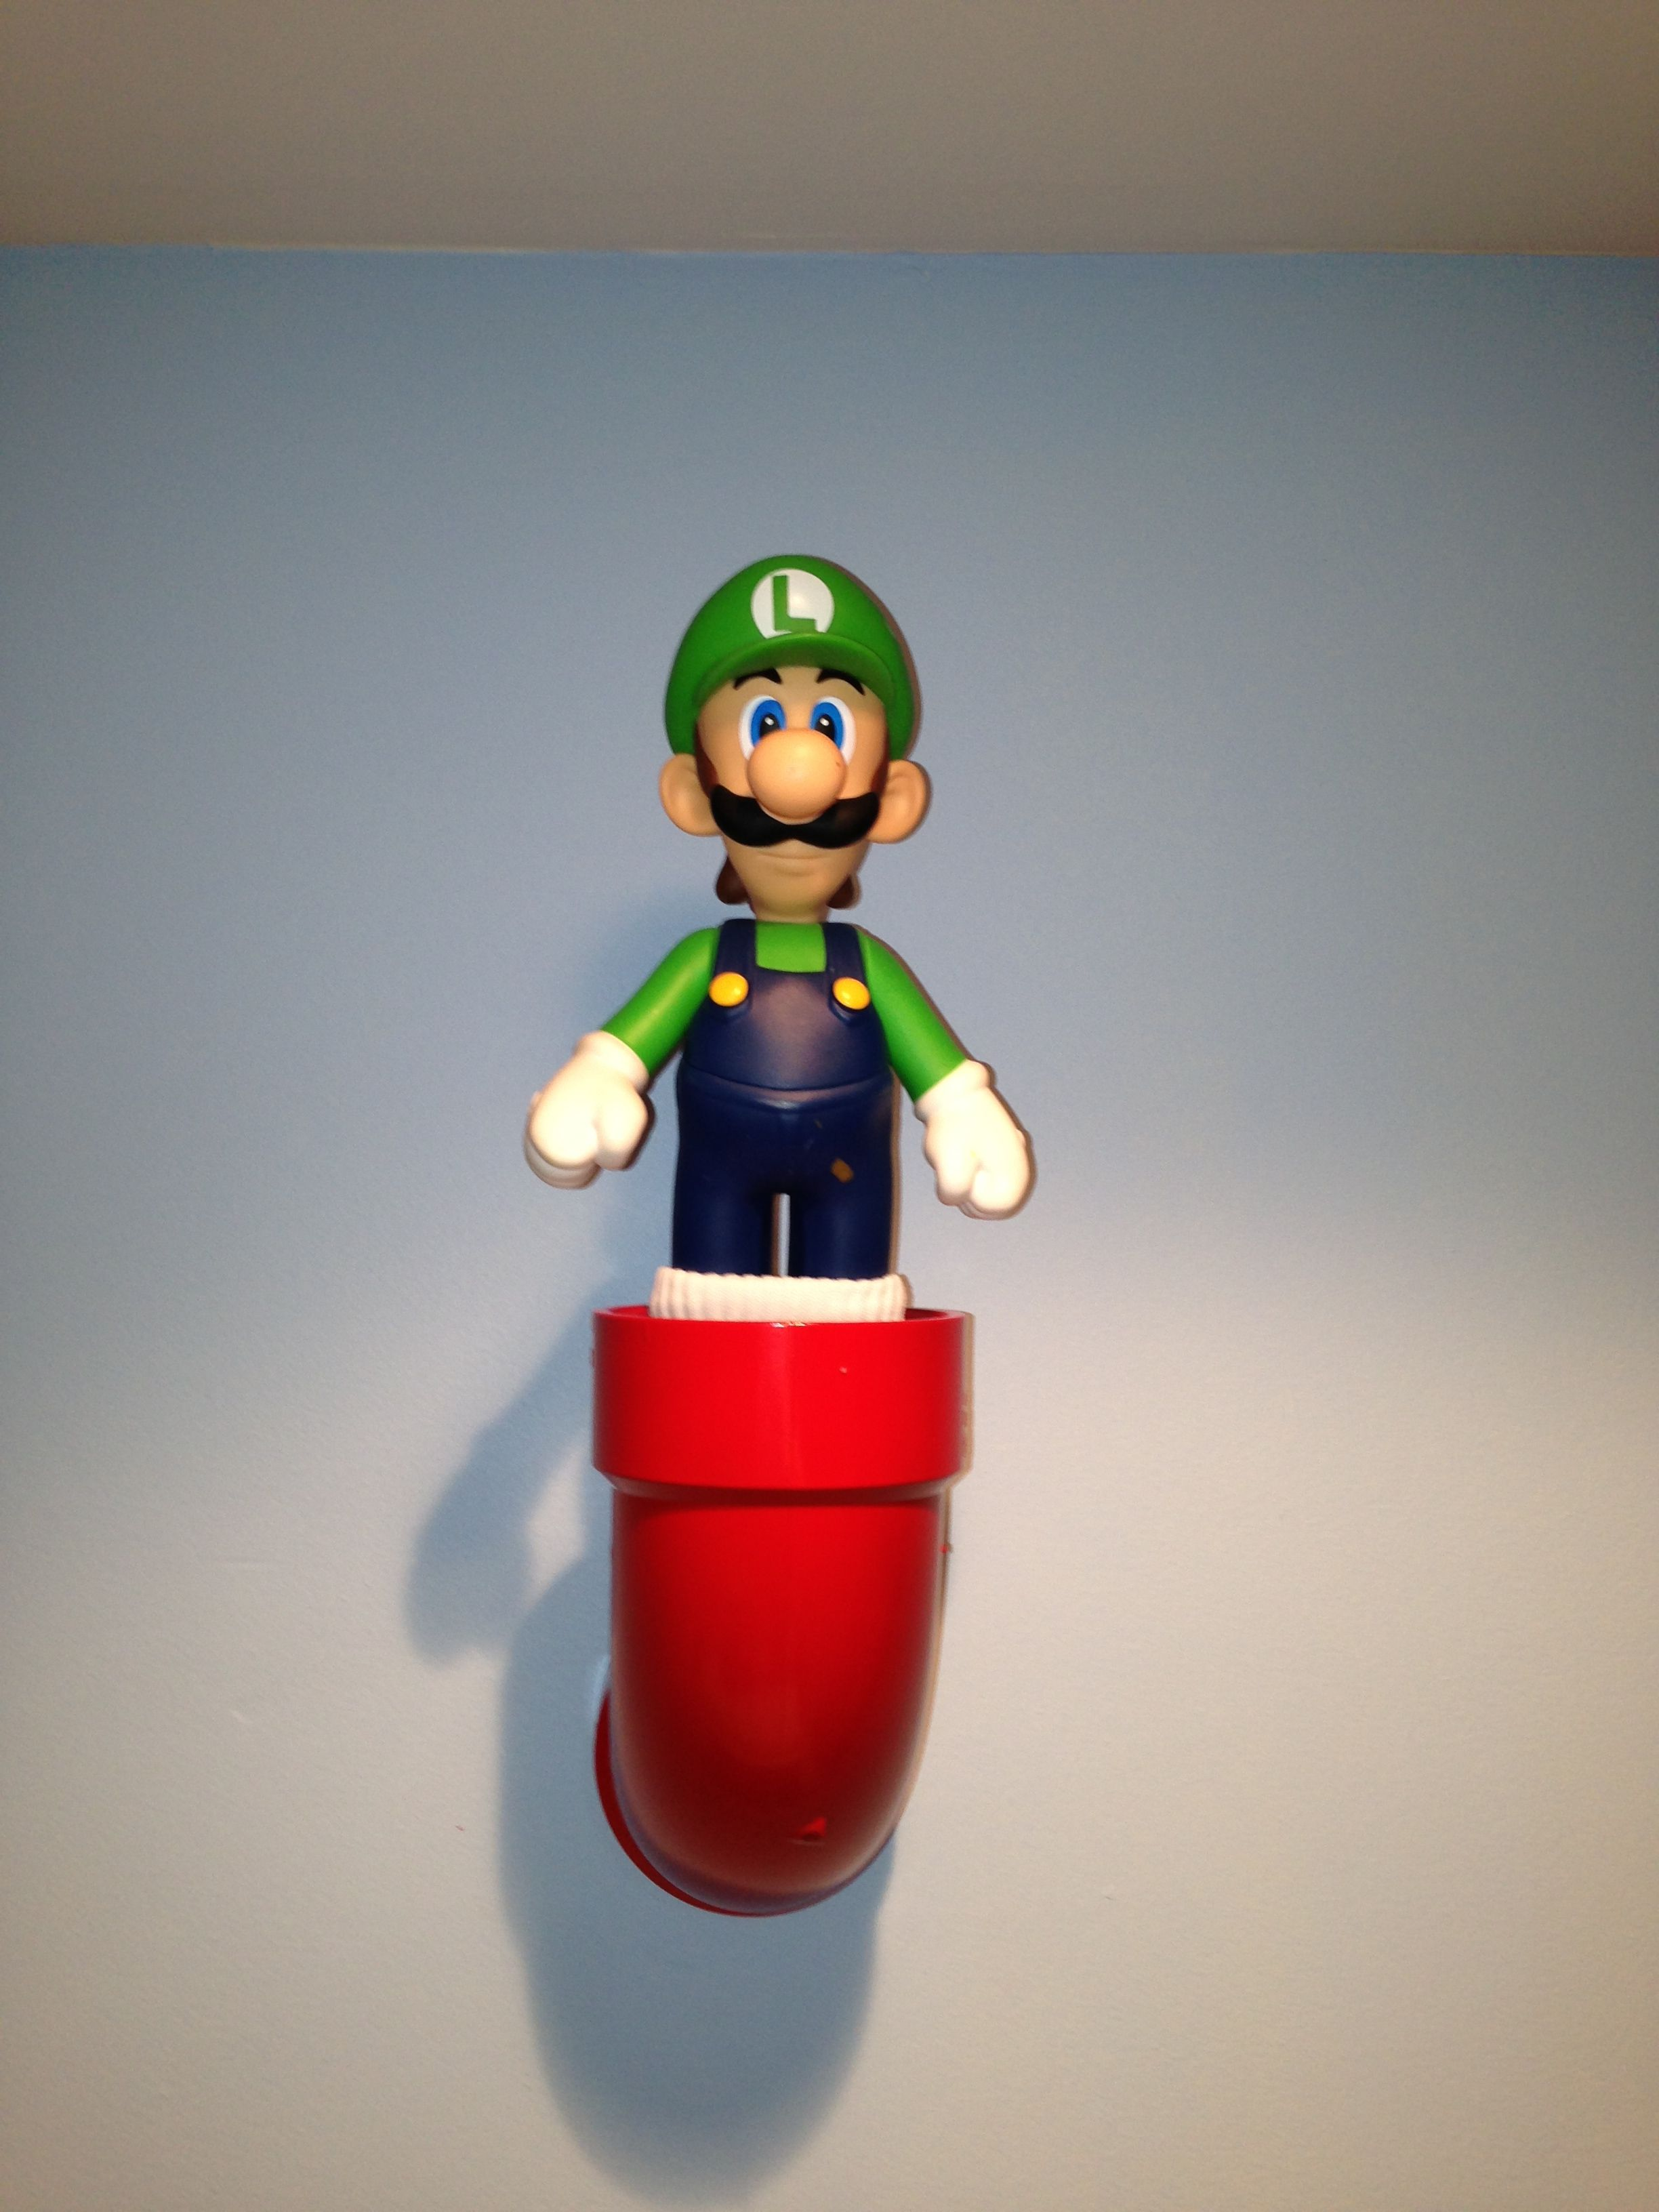 Mario Bros room decor Cool idea with pvc pipe and a toy kids